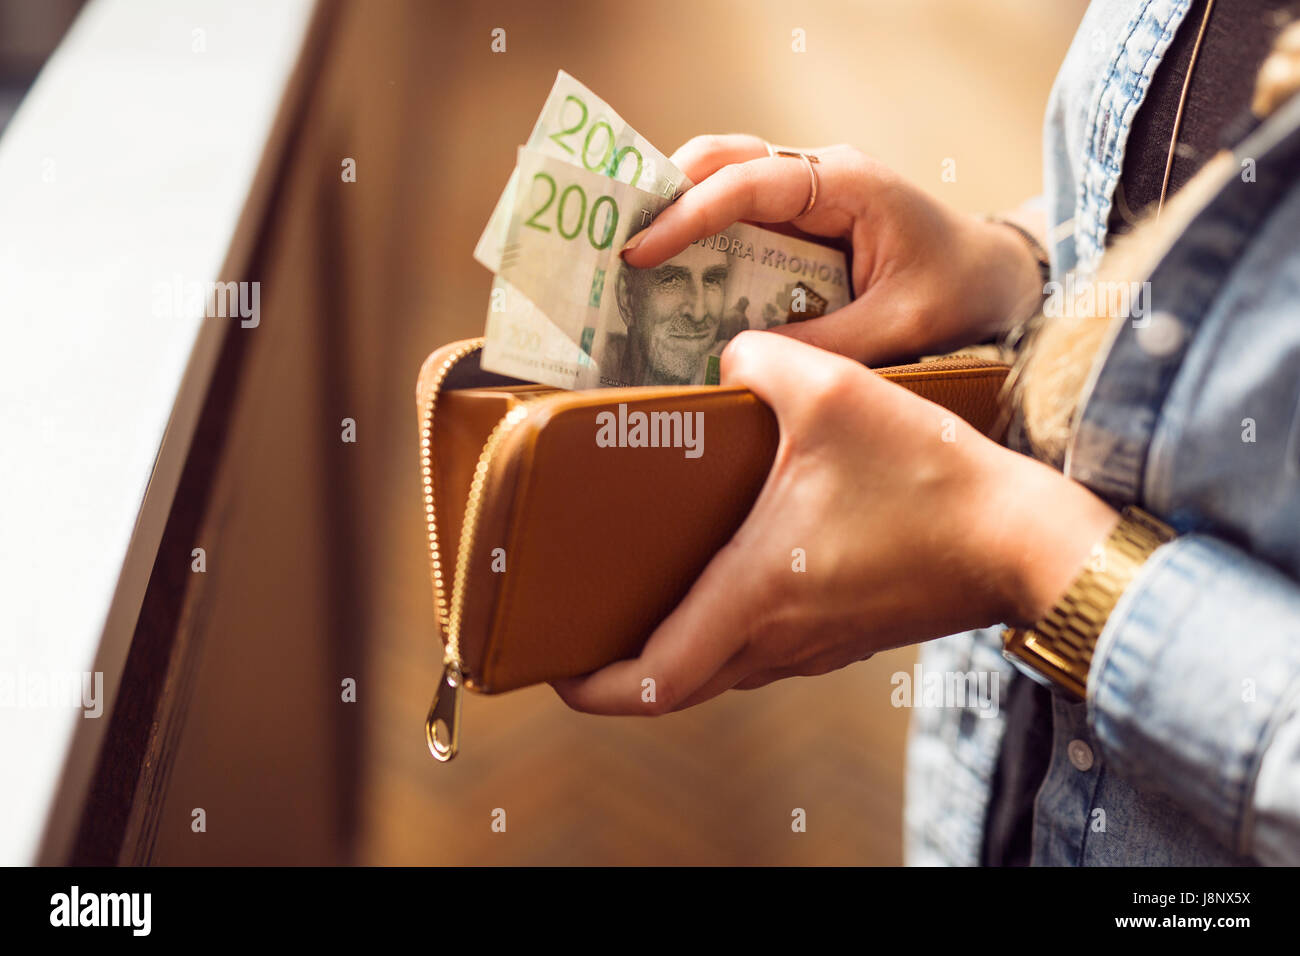 Woman holding open wallet and banknotes Stock Photo